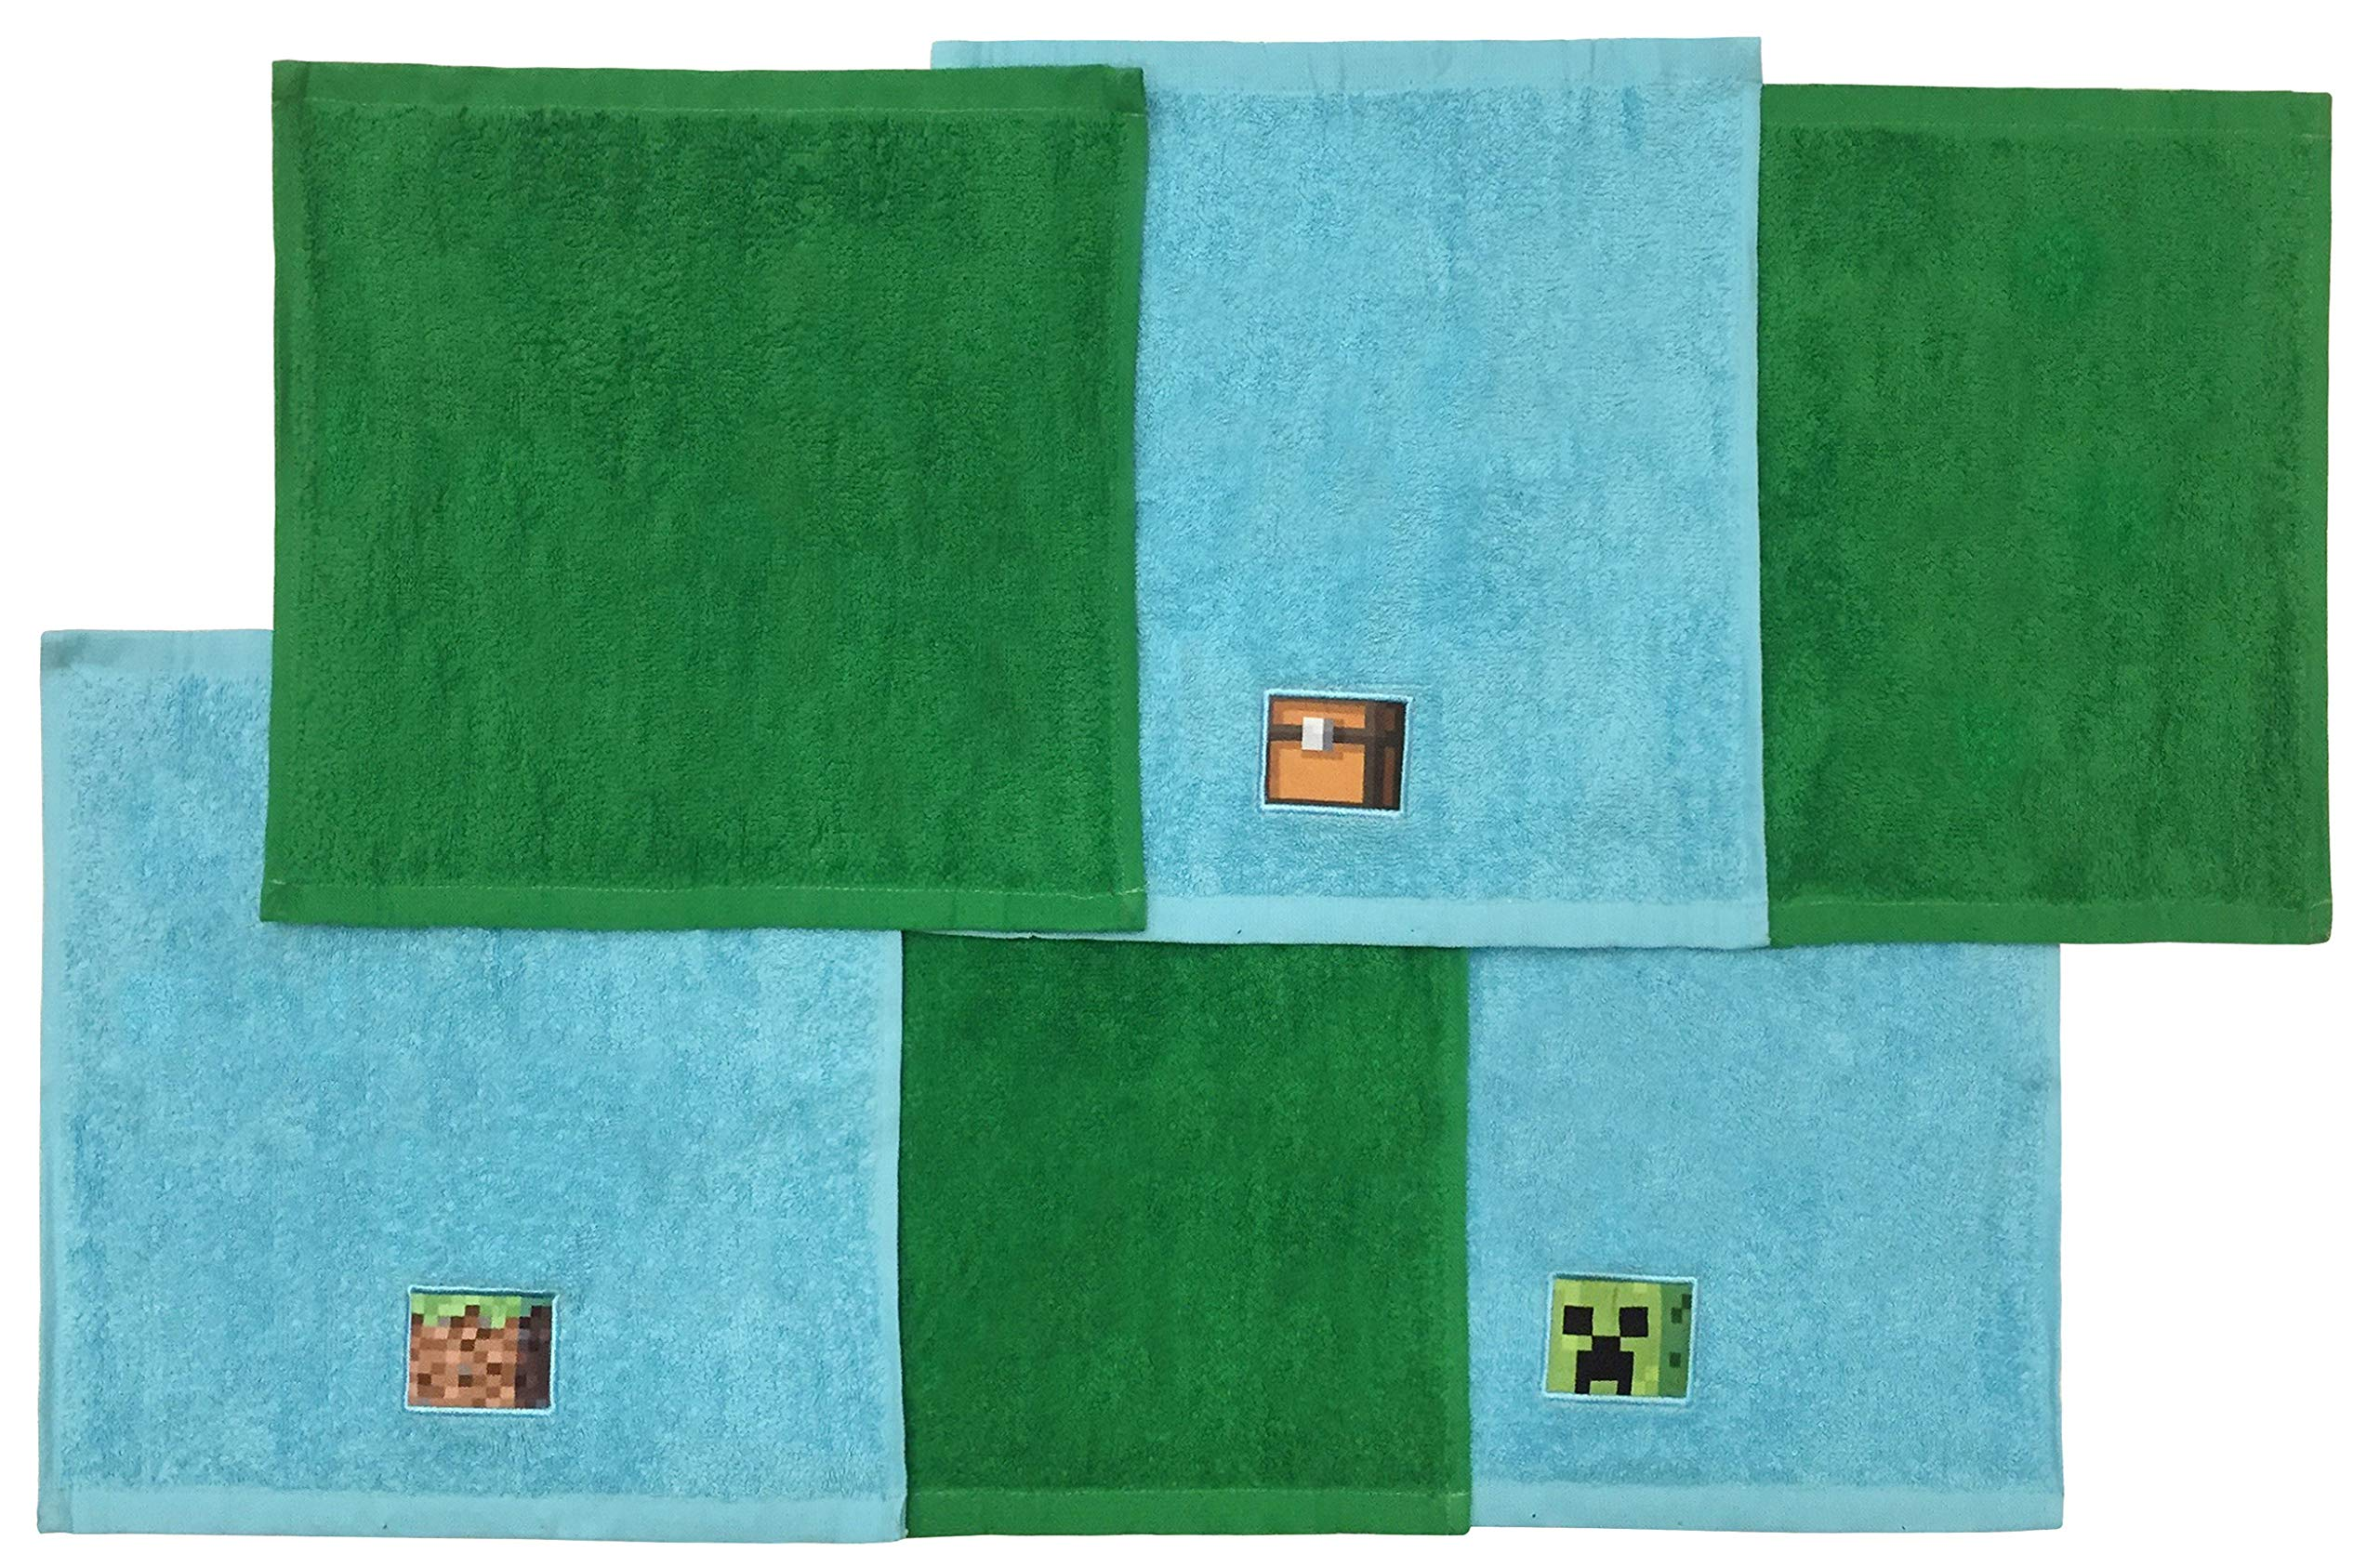 Minecraft Overworld Adventure 6 Piece Cotton Washcloth Set - Featuring Creeper, 12'' Inches x 12'' Inches